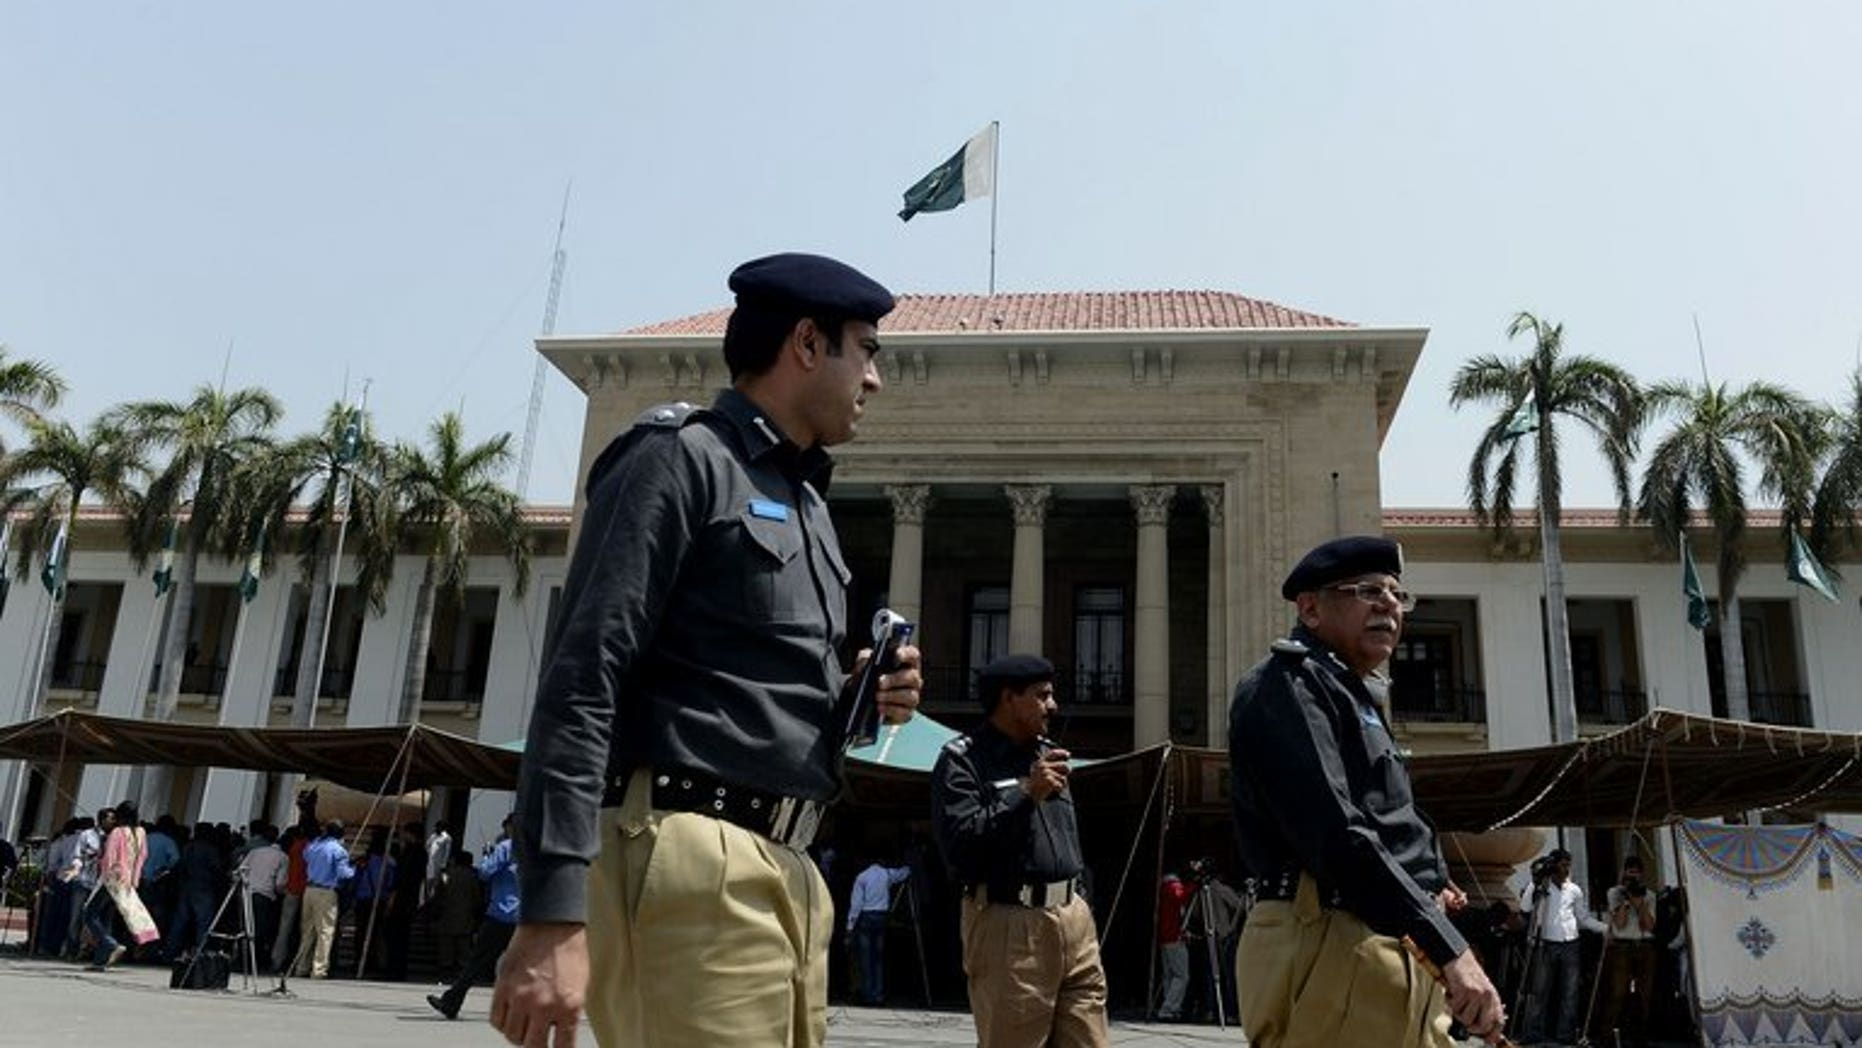 Pakistani police officers walk past Punjab provincial assembly building in Lahore on June 1, 2013. Police in Pakistan have arrested a cook on suspicion of murder after 22 members of a powerful landowning clan were poisoned in an alleged political feud with a rival branch of the family.